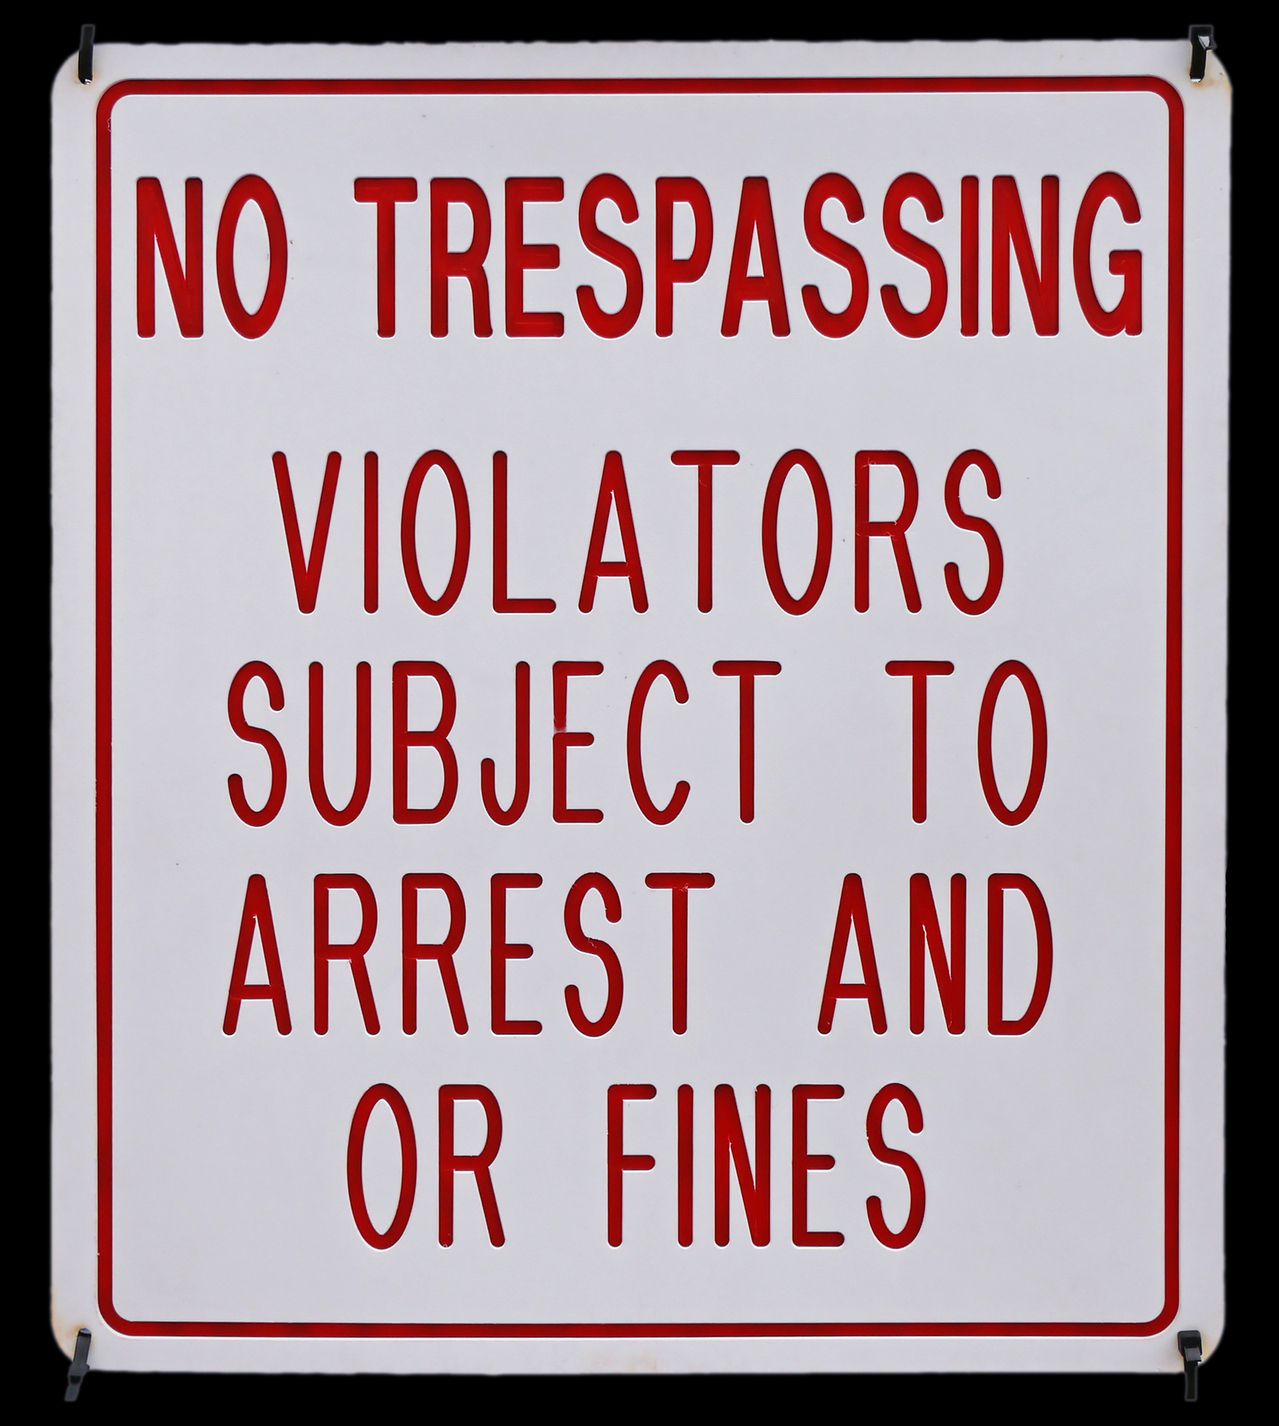 no-trespassing-sign-1420981-1279x1426 (1).jpg